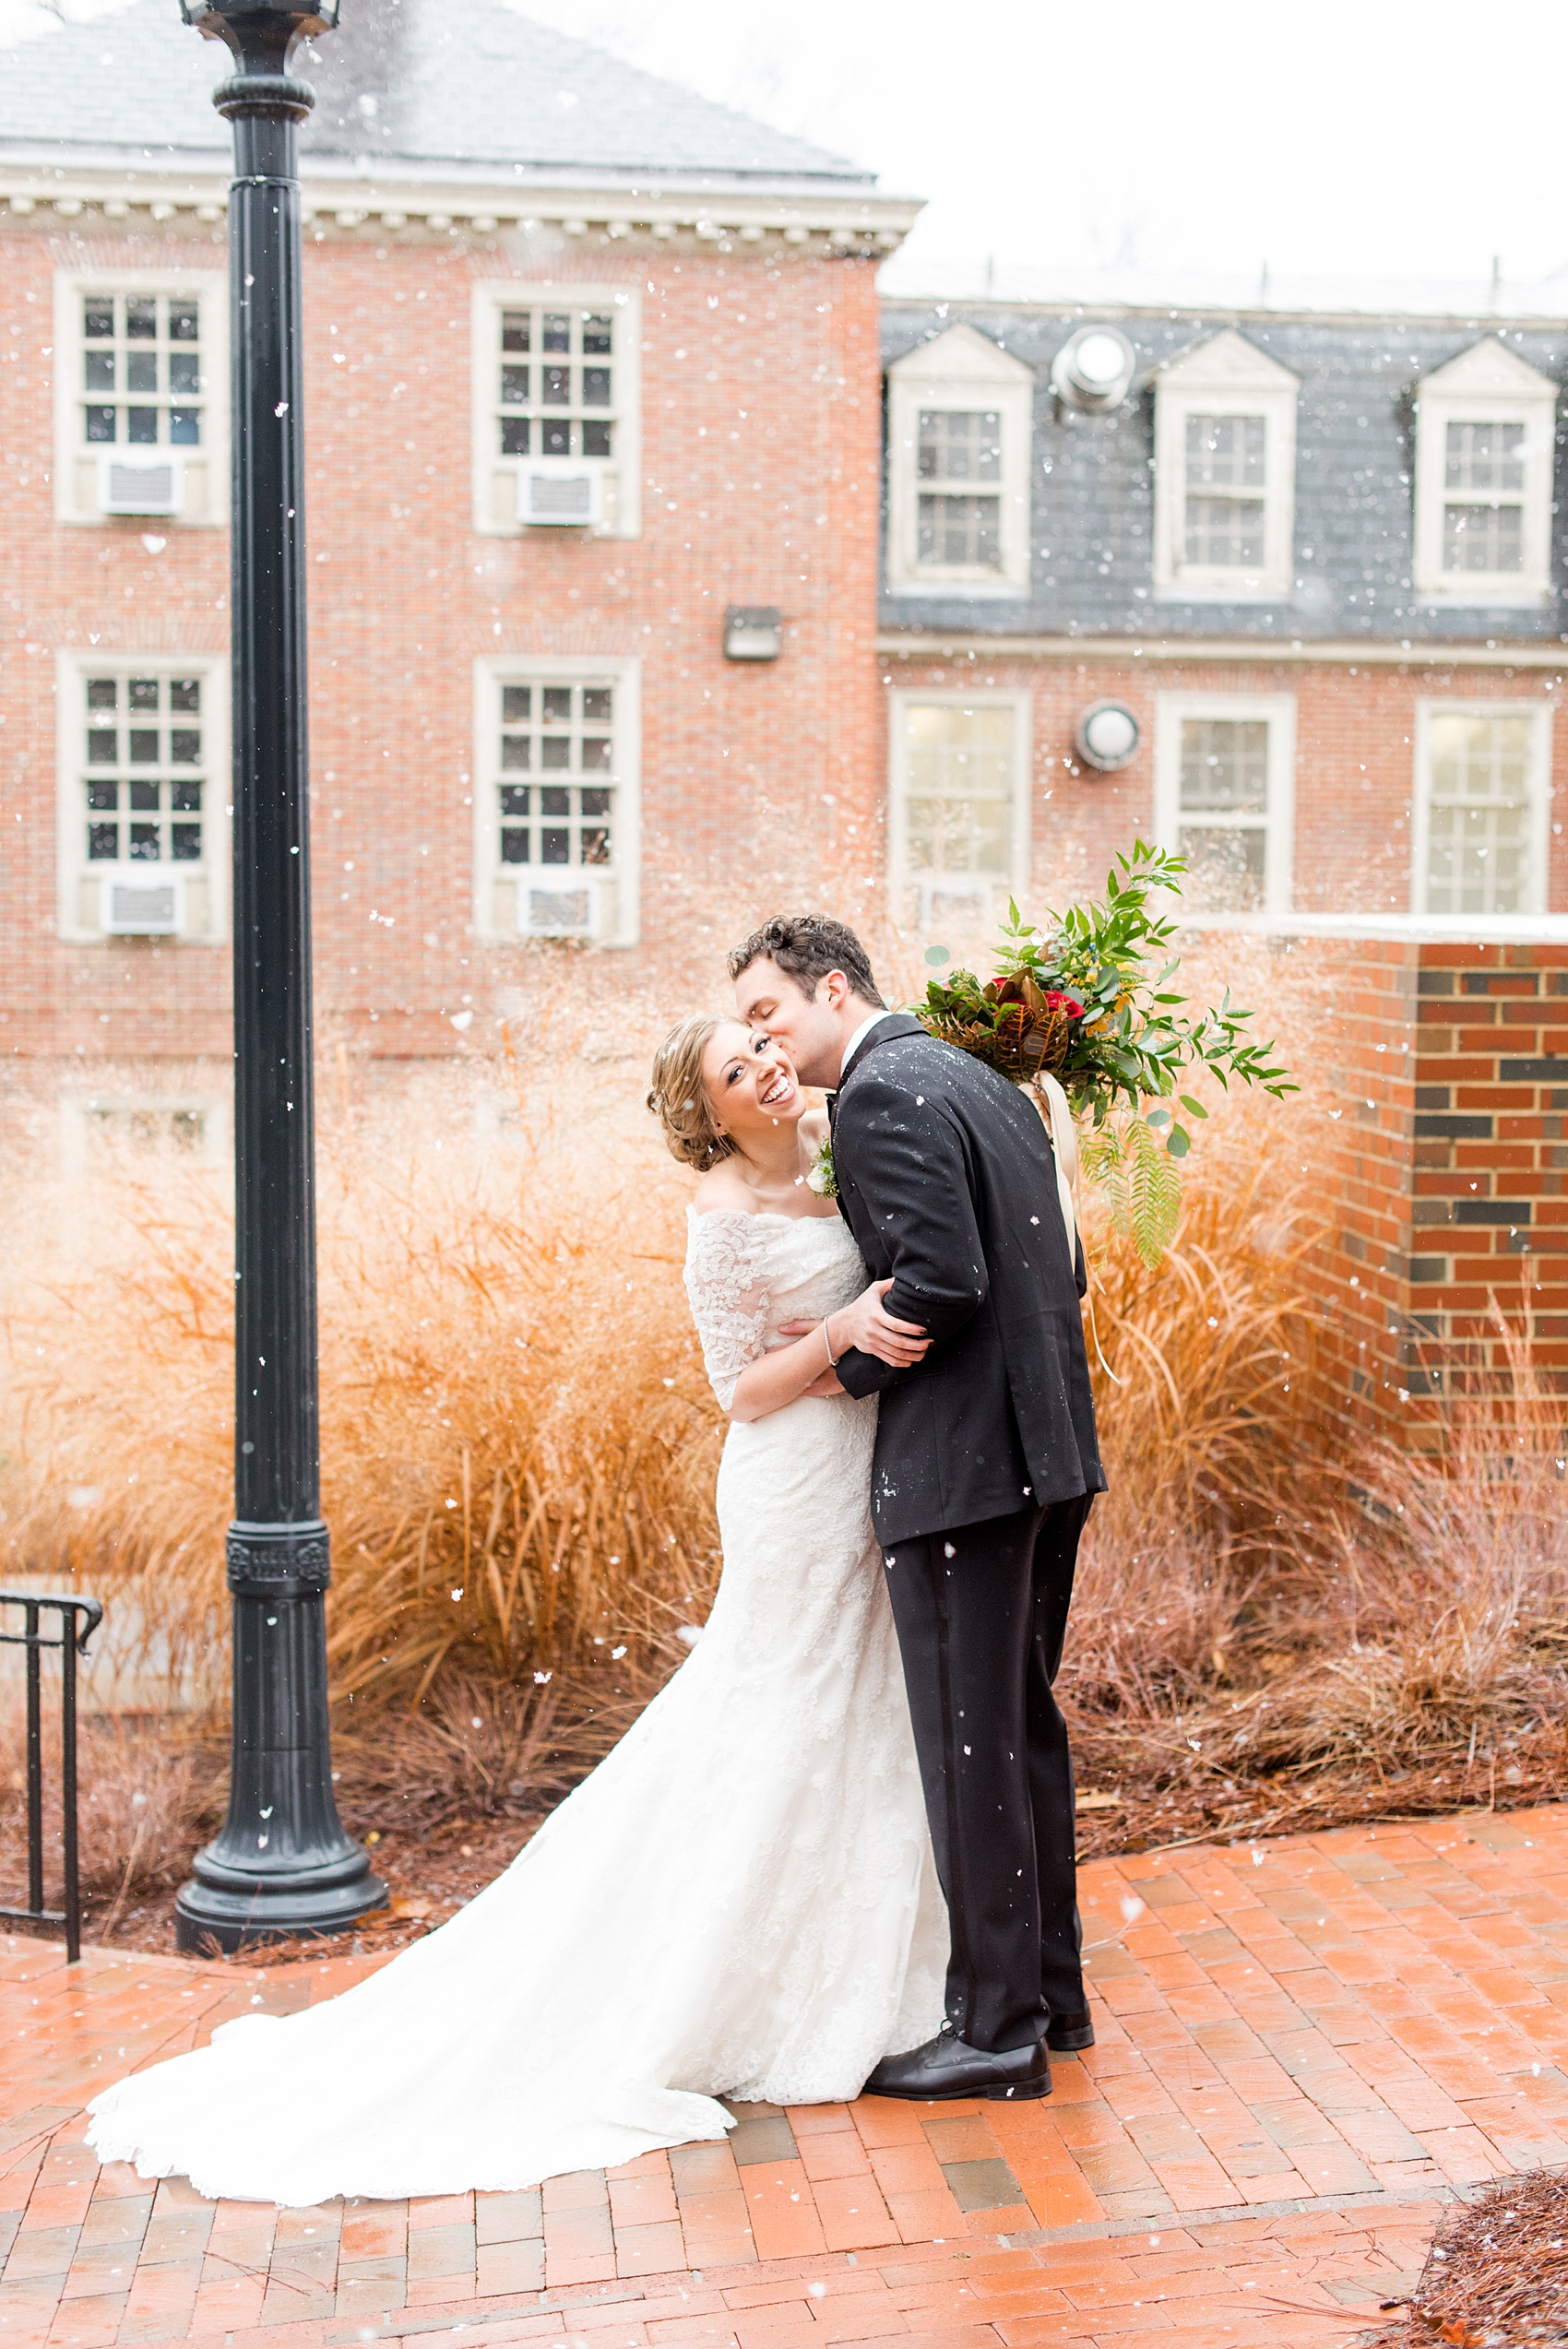 Beautiful wedding photos at The Carolina Inn at Chapel Hill, North Carolina by Mikkel Paige Photography. This snowy wedding is definitely click-worthy to see all their amazing details!